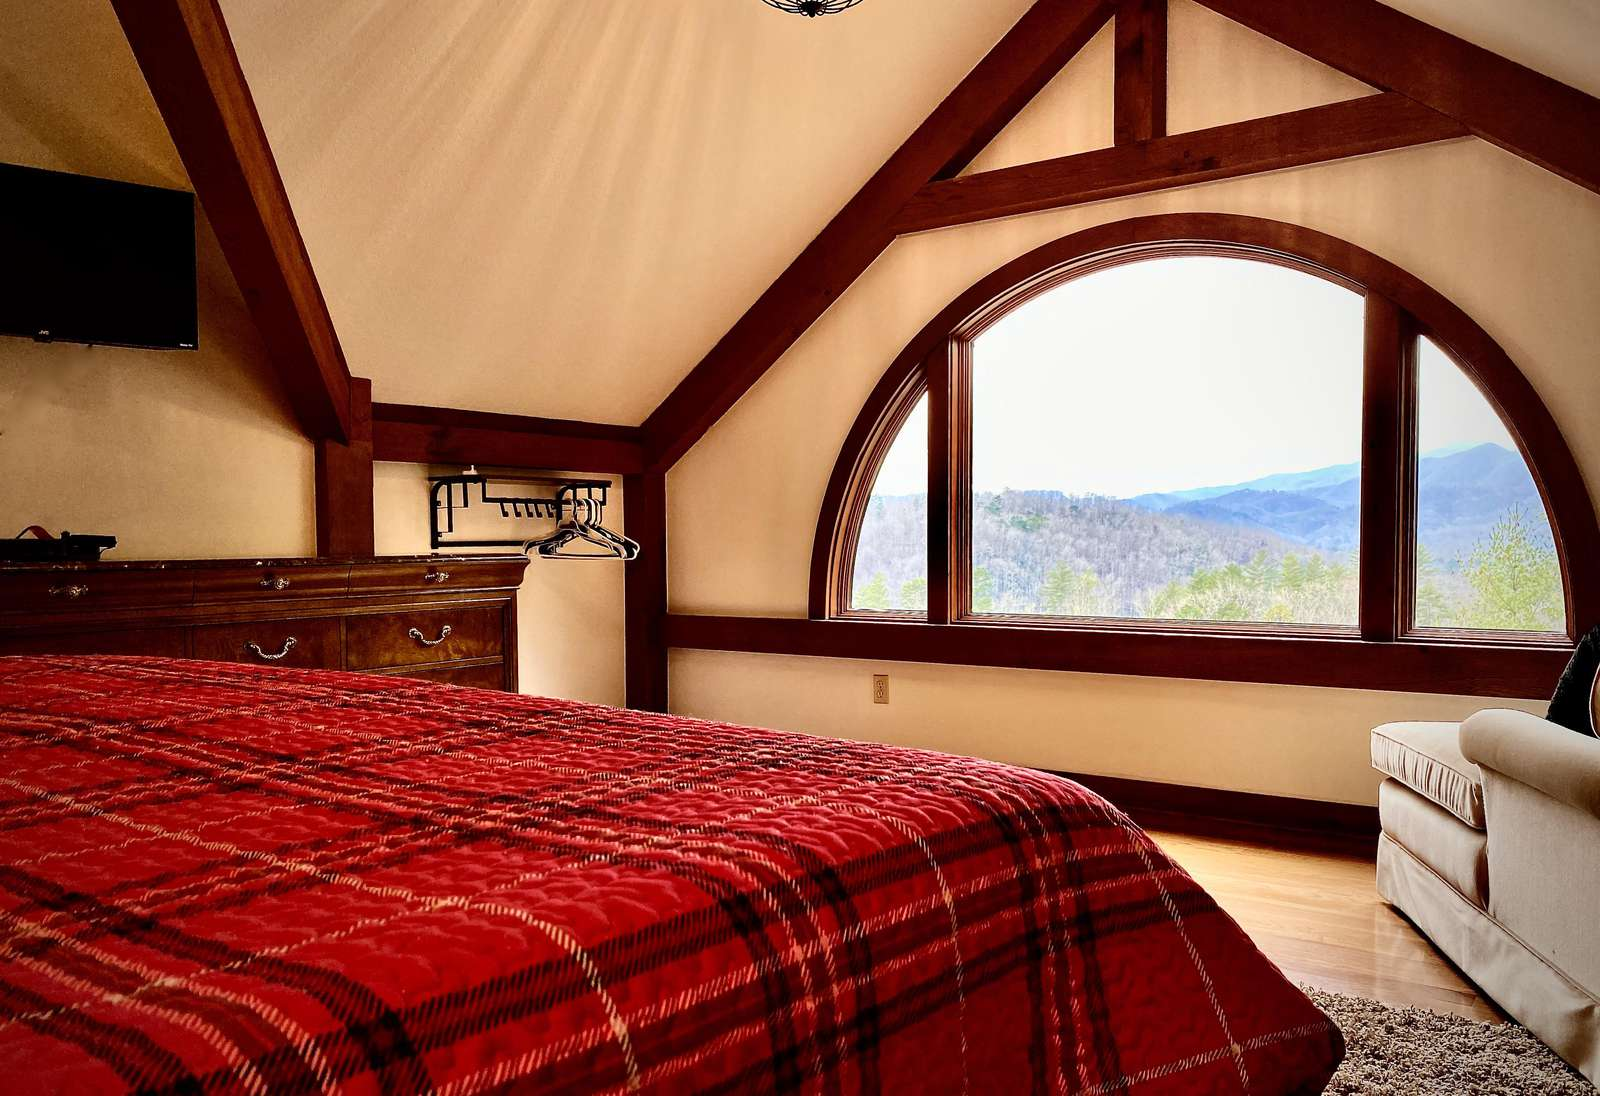 Upstairs, the Jr. Master Suite's King Bed is Perfectly Placed to Enjoy the Mountain Views